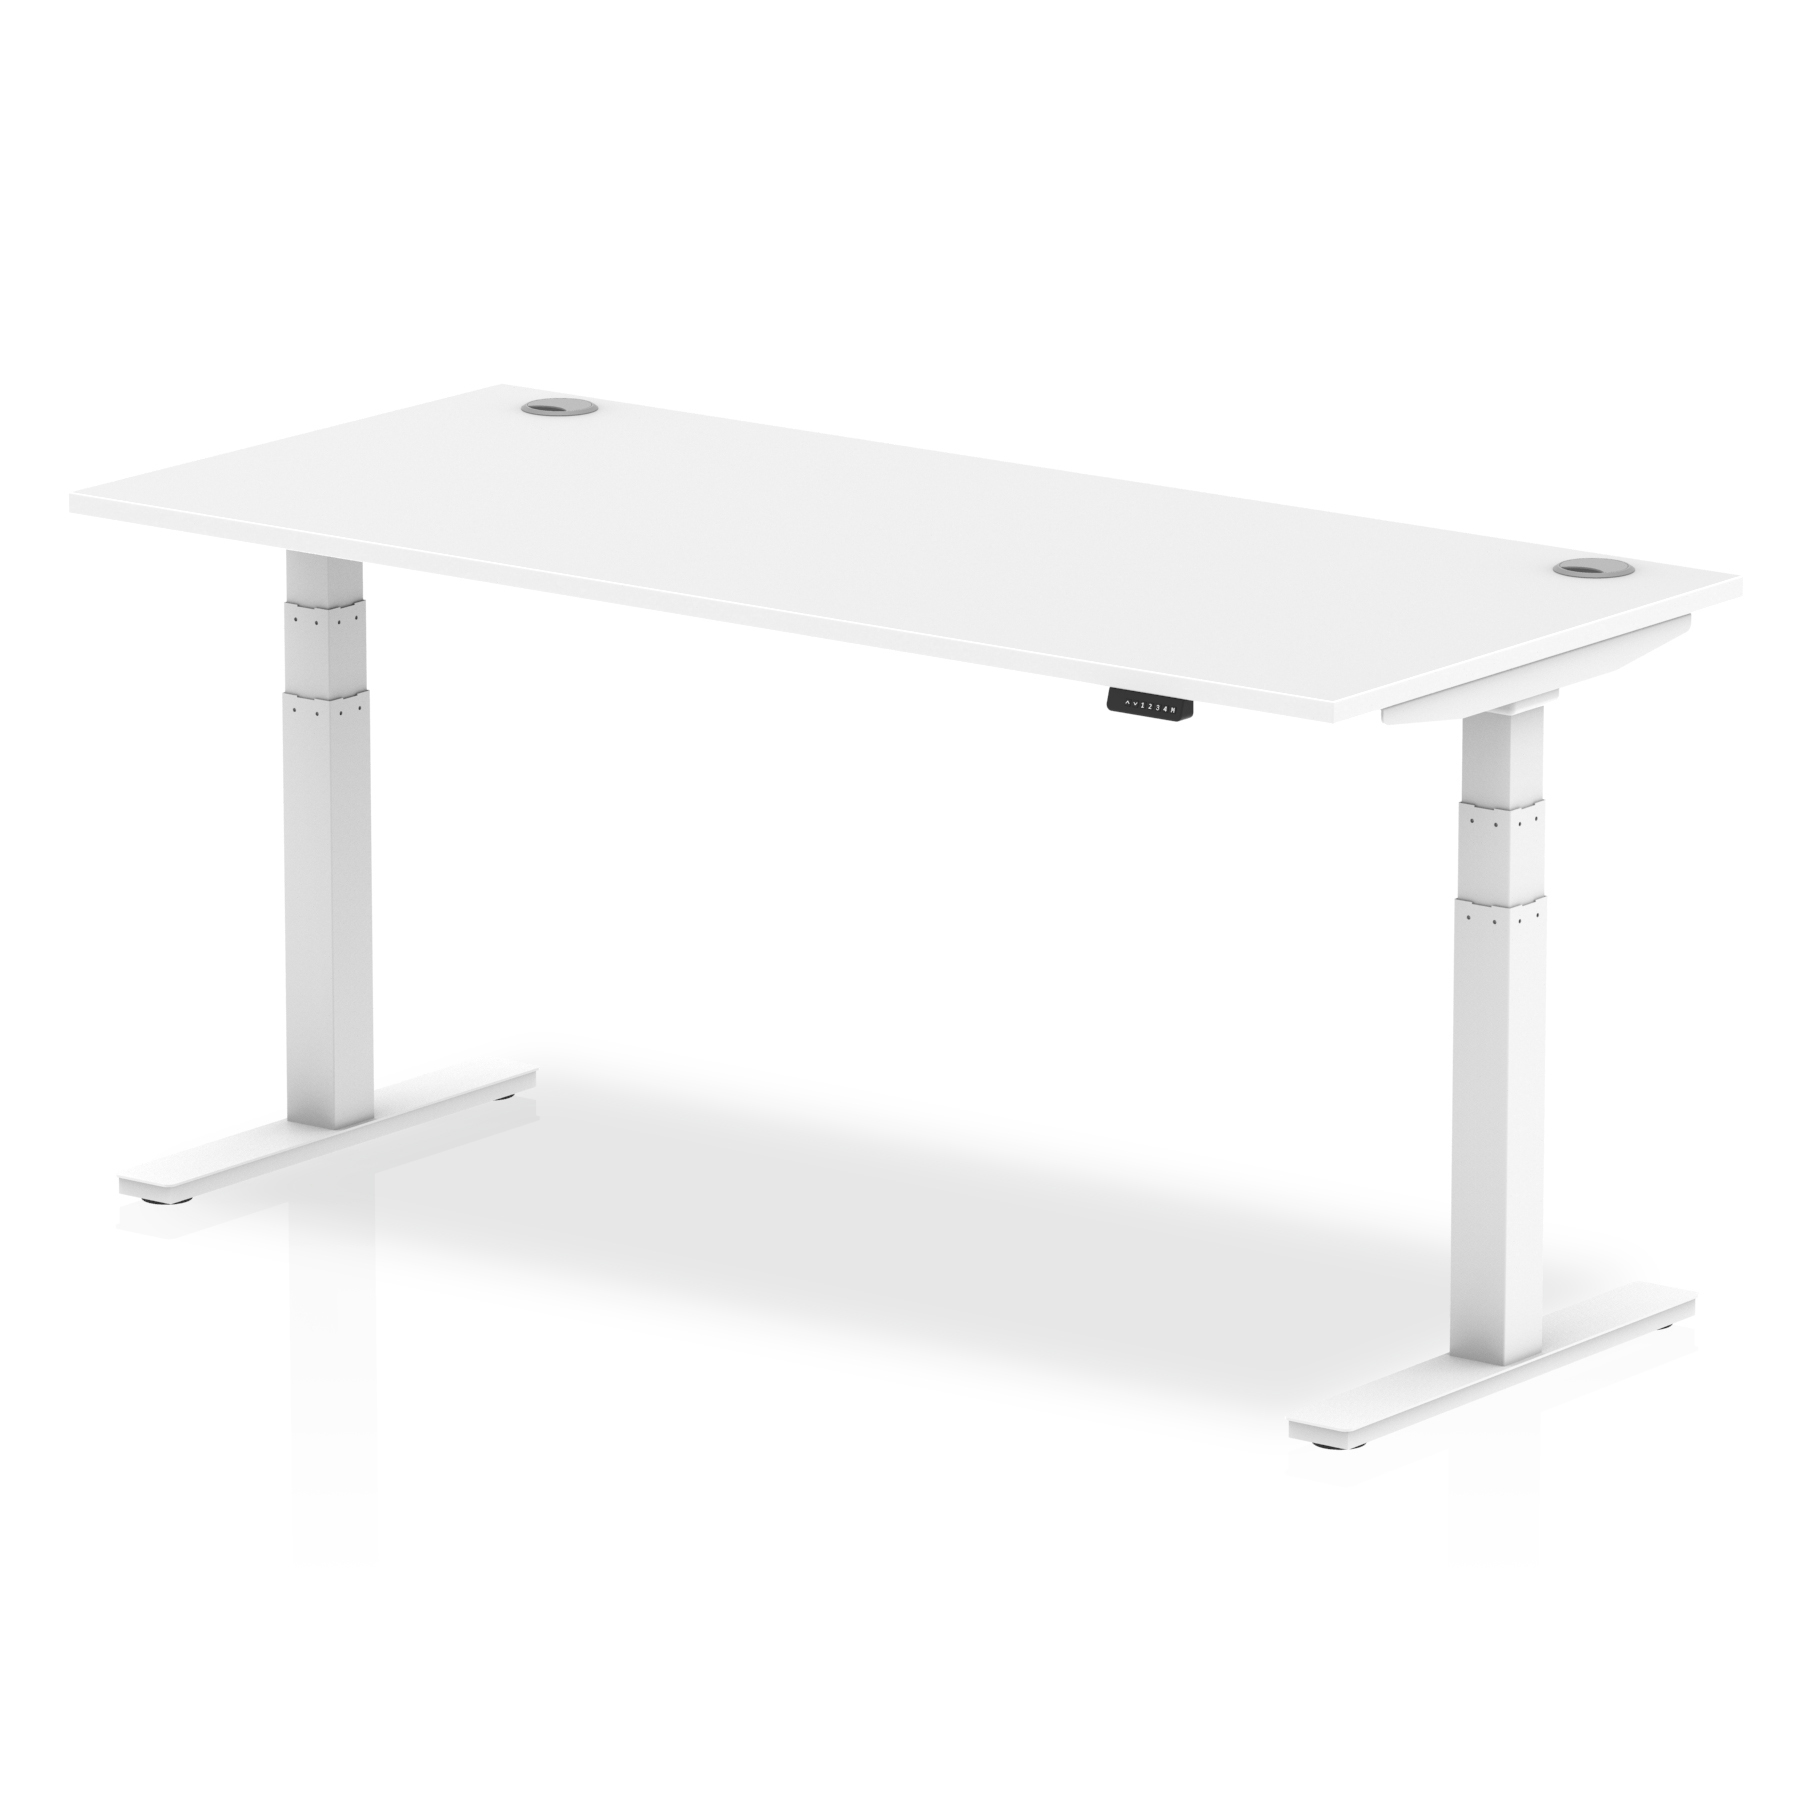 Trexus Sit Stand Desk With Cable Ports White Legs 1800x800mm White Ref HA01112